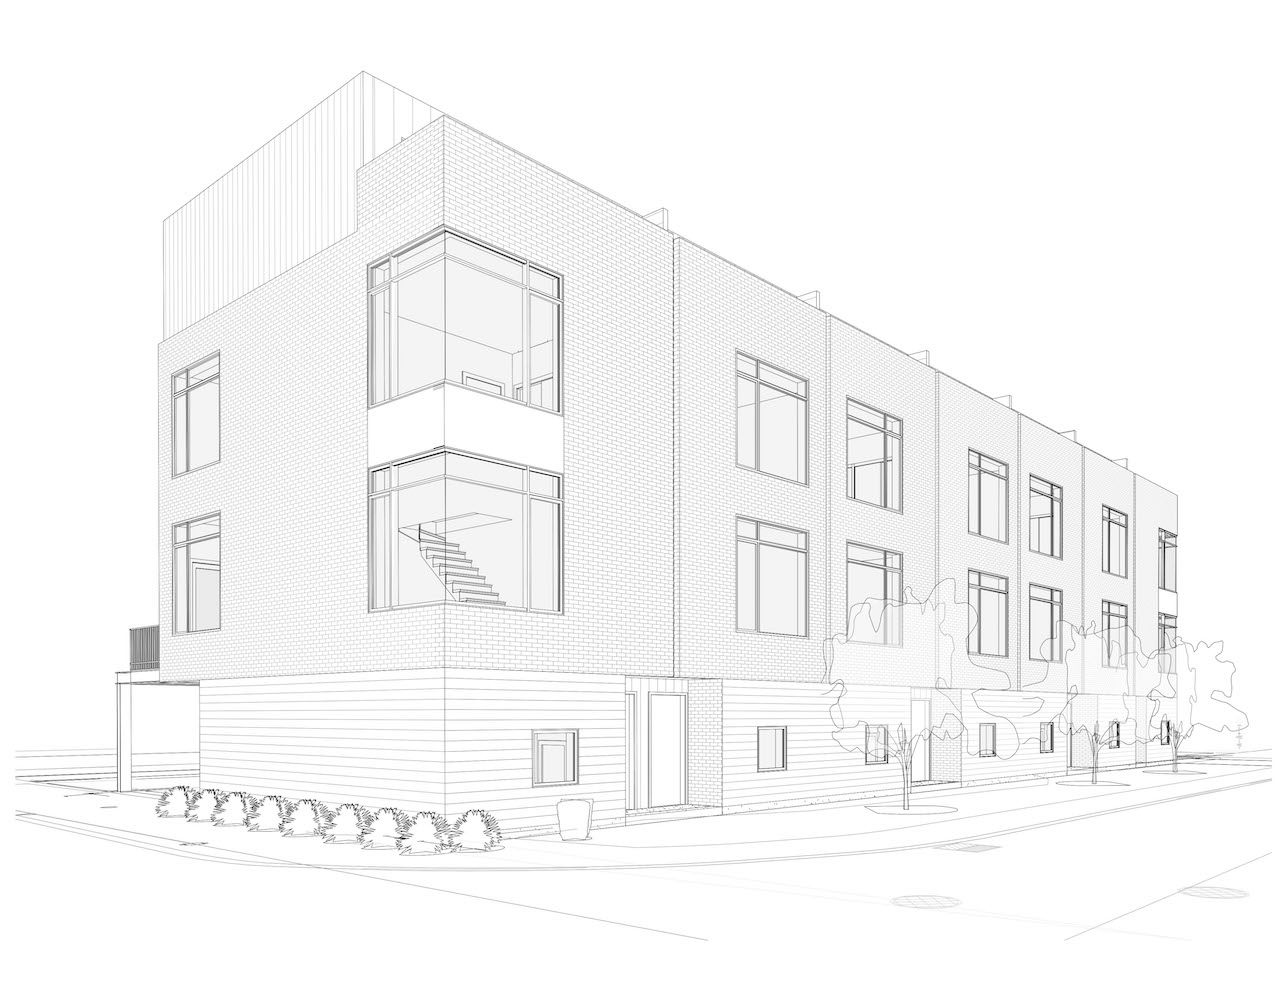 growth to watch for dupont the junction and st clair west Toronto Indian Community rendering of 1025 dupont street image retrieved via submission to the city of toronto